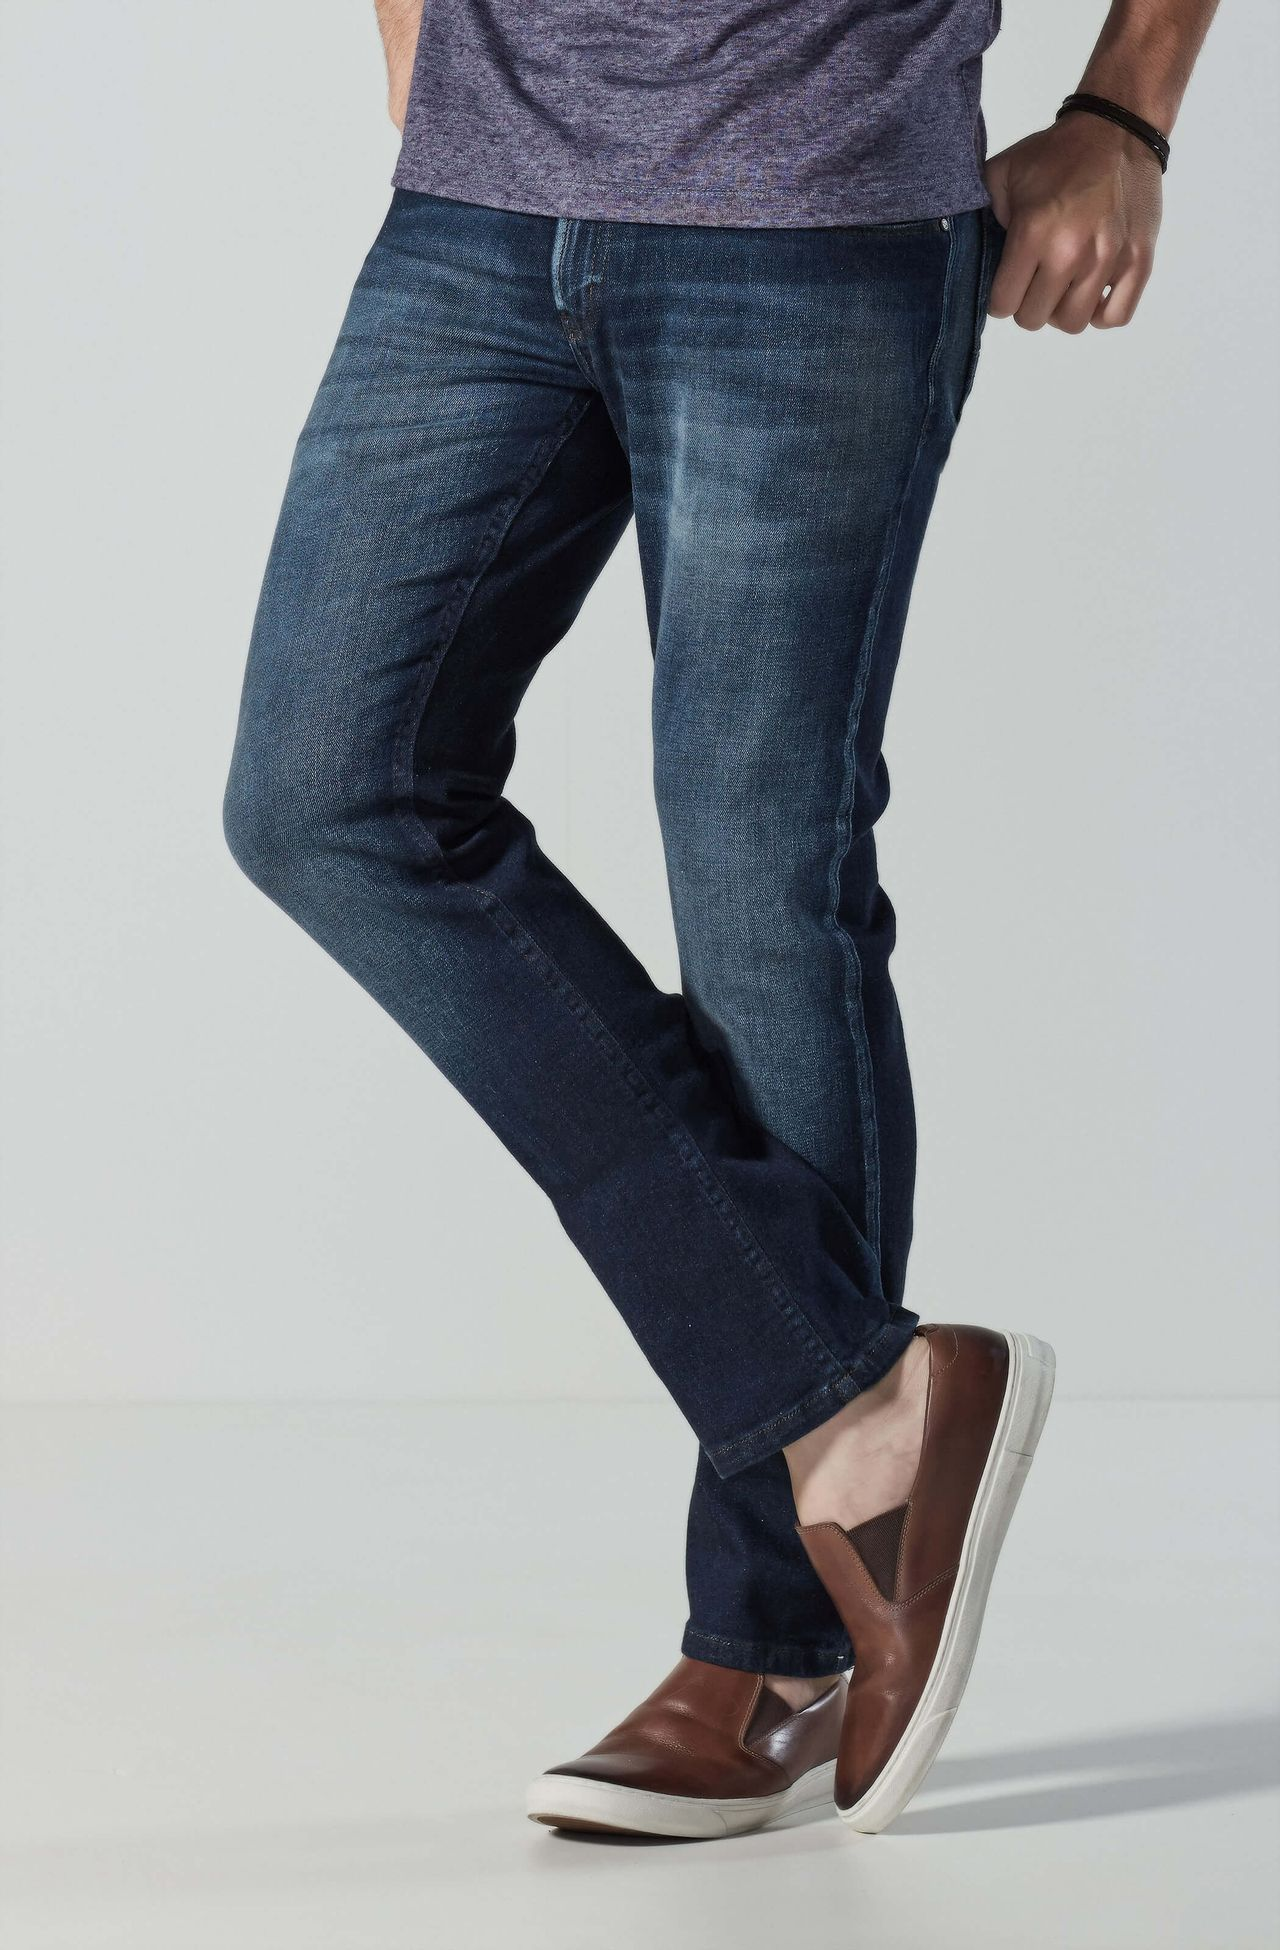 4346NCZ00018_590_1-CALCA-JEANS-STONE-LOW-RISE